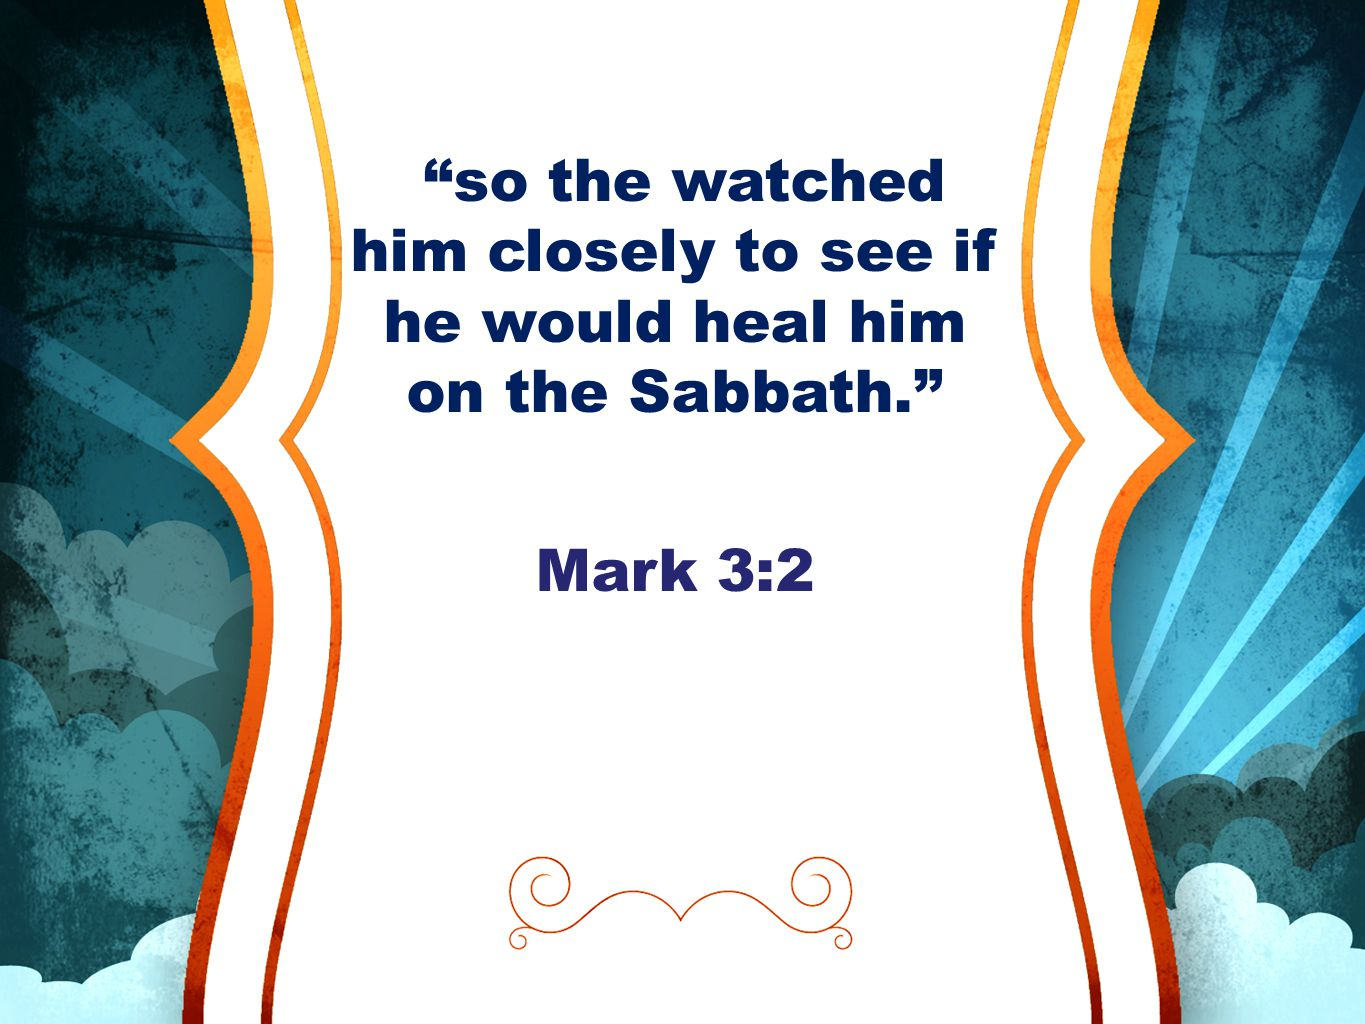 so the watched him closely to see if he would heal him on the Sabbath. Mark 3:2